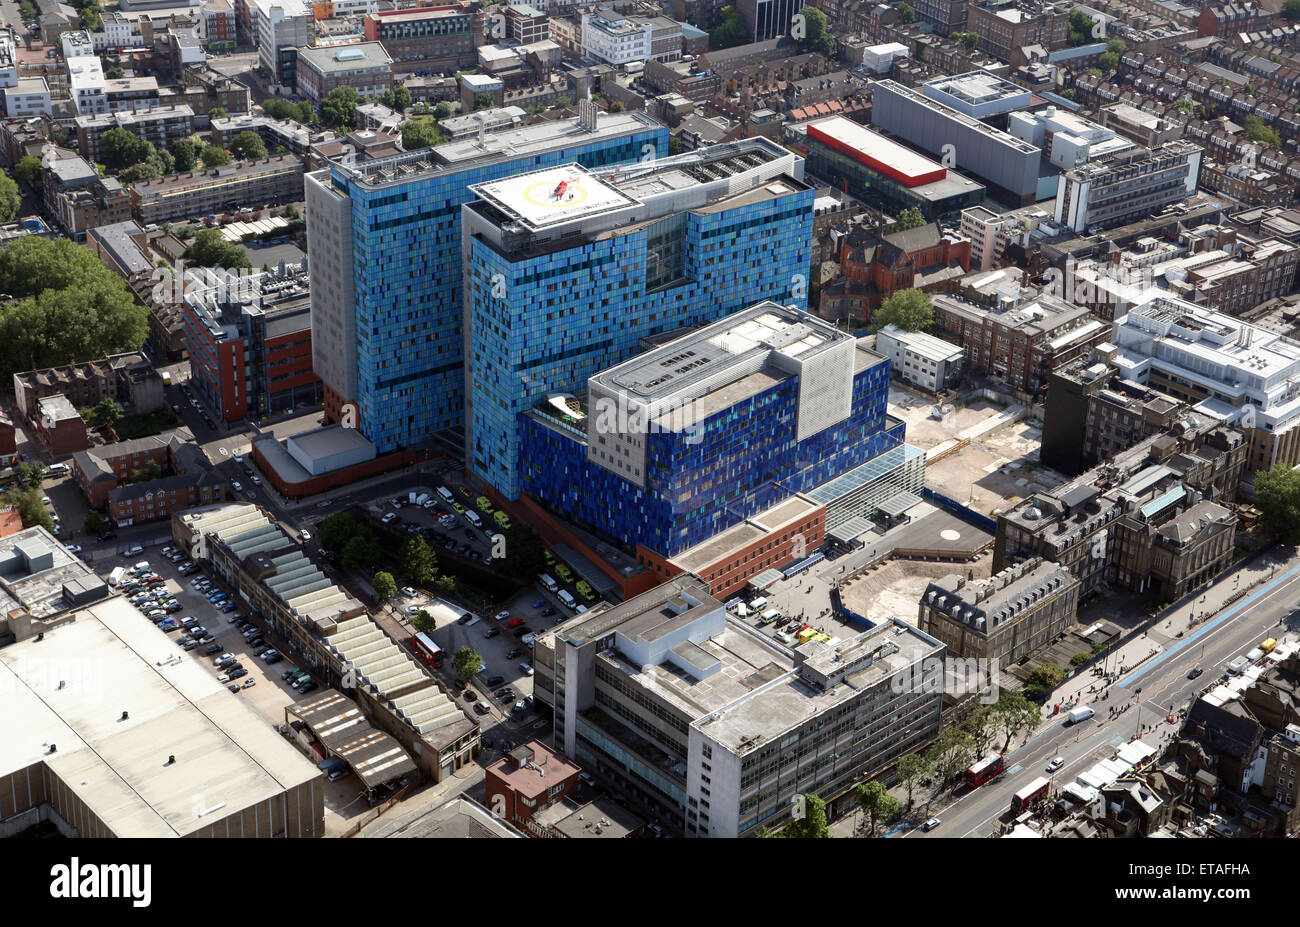 aerial view of The Royal London Hospital, UK - Stock Image